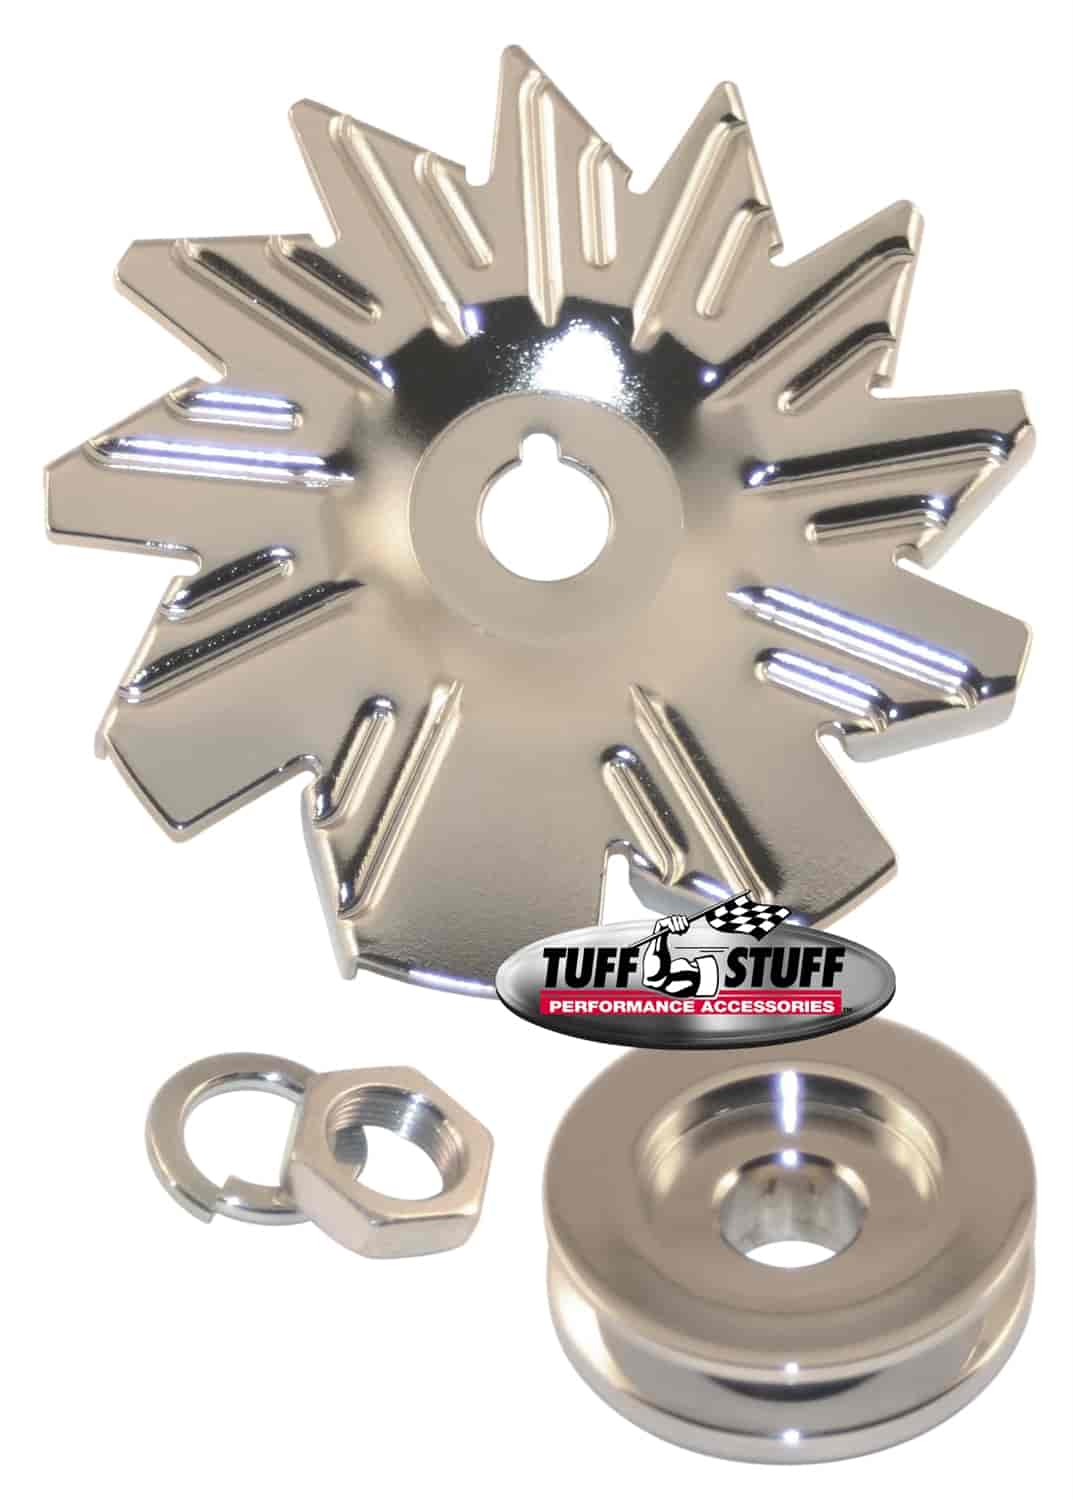 Tuff Stuff 7600A - Tuff Stuff Chrome Alternators